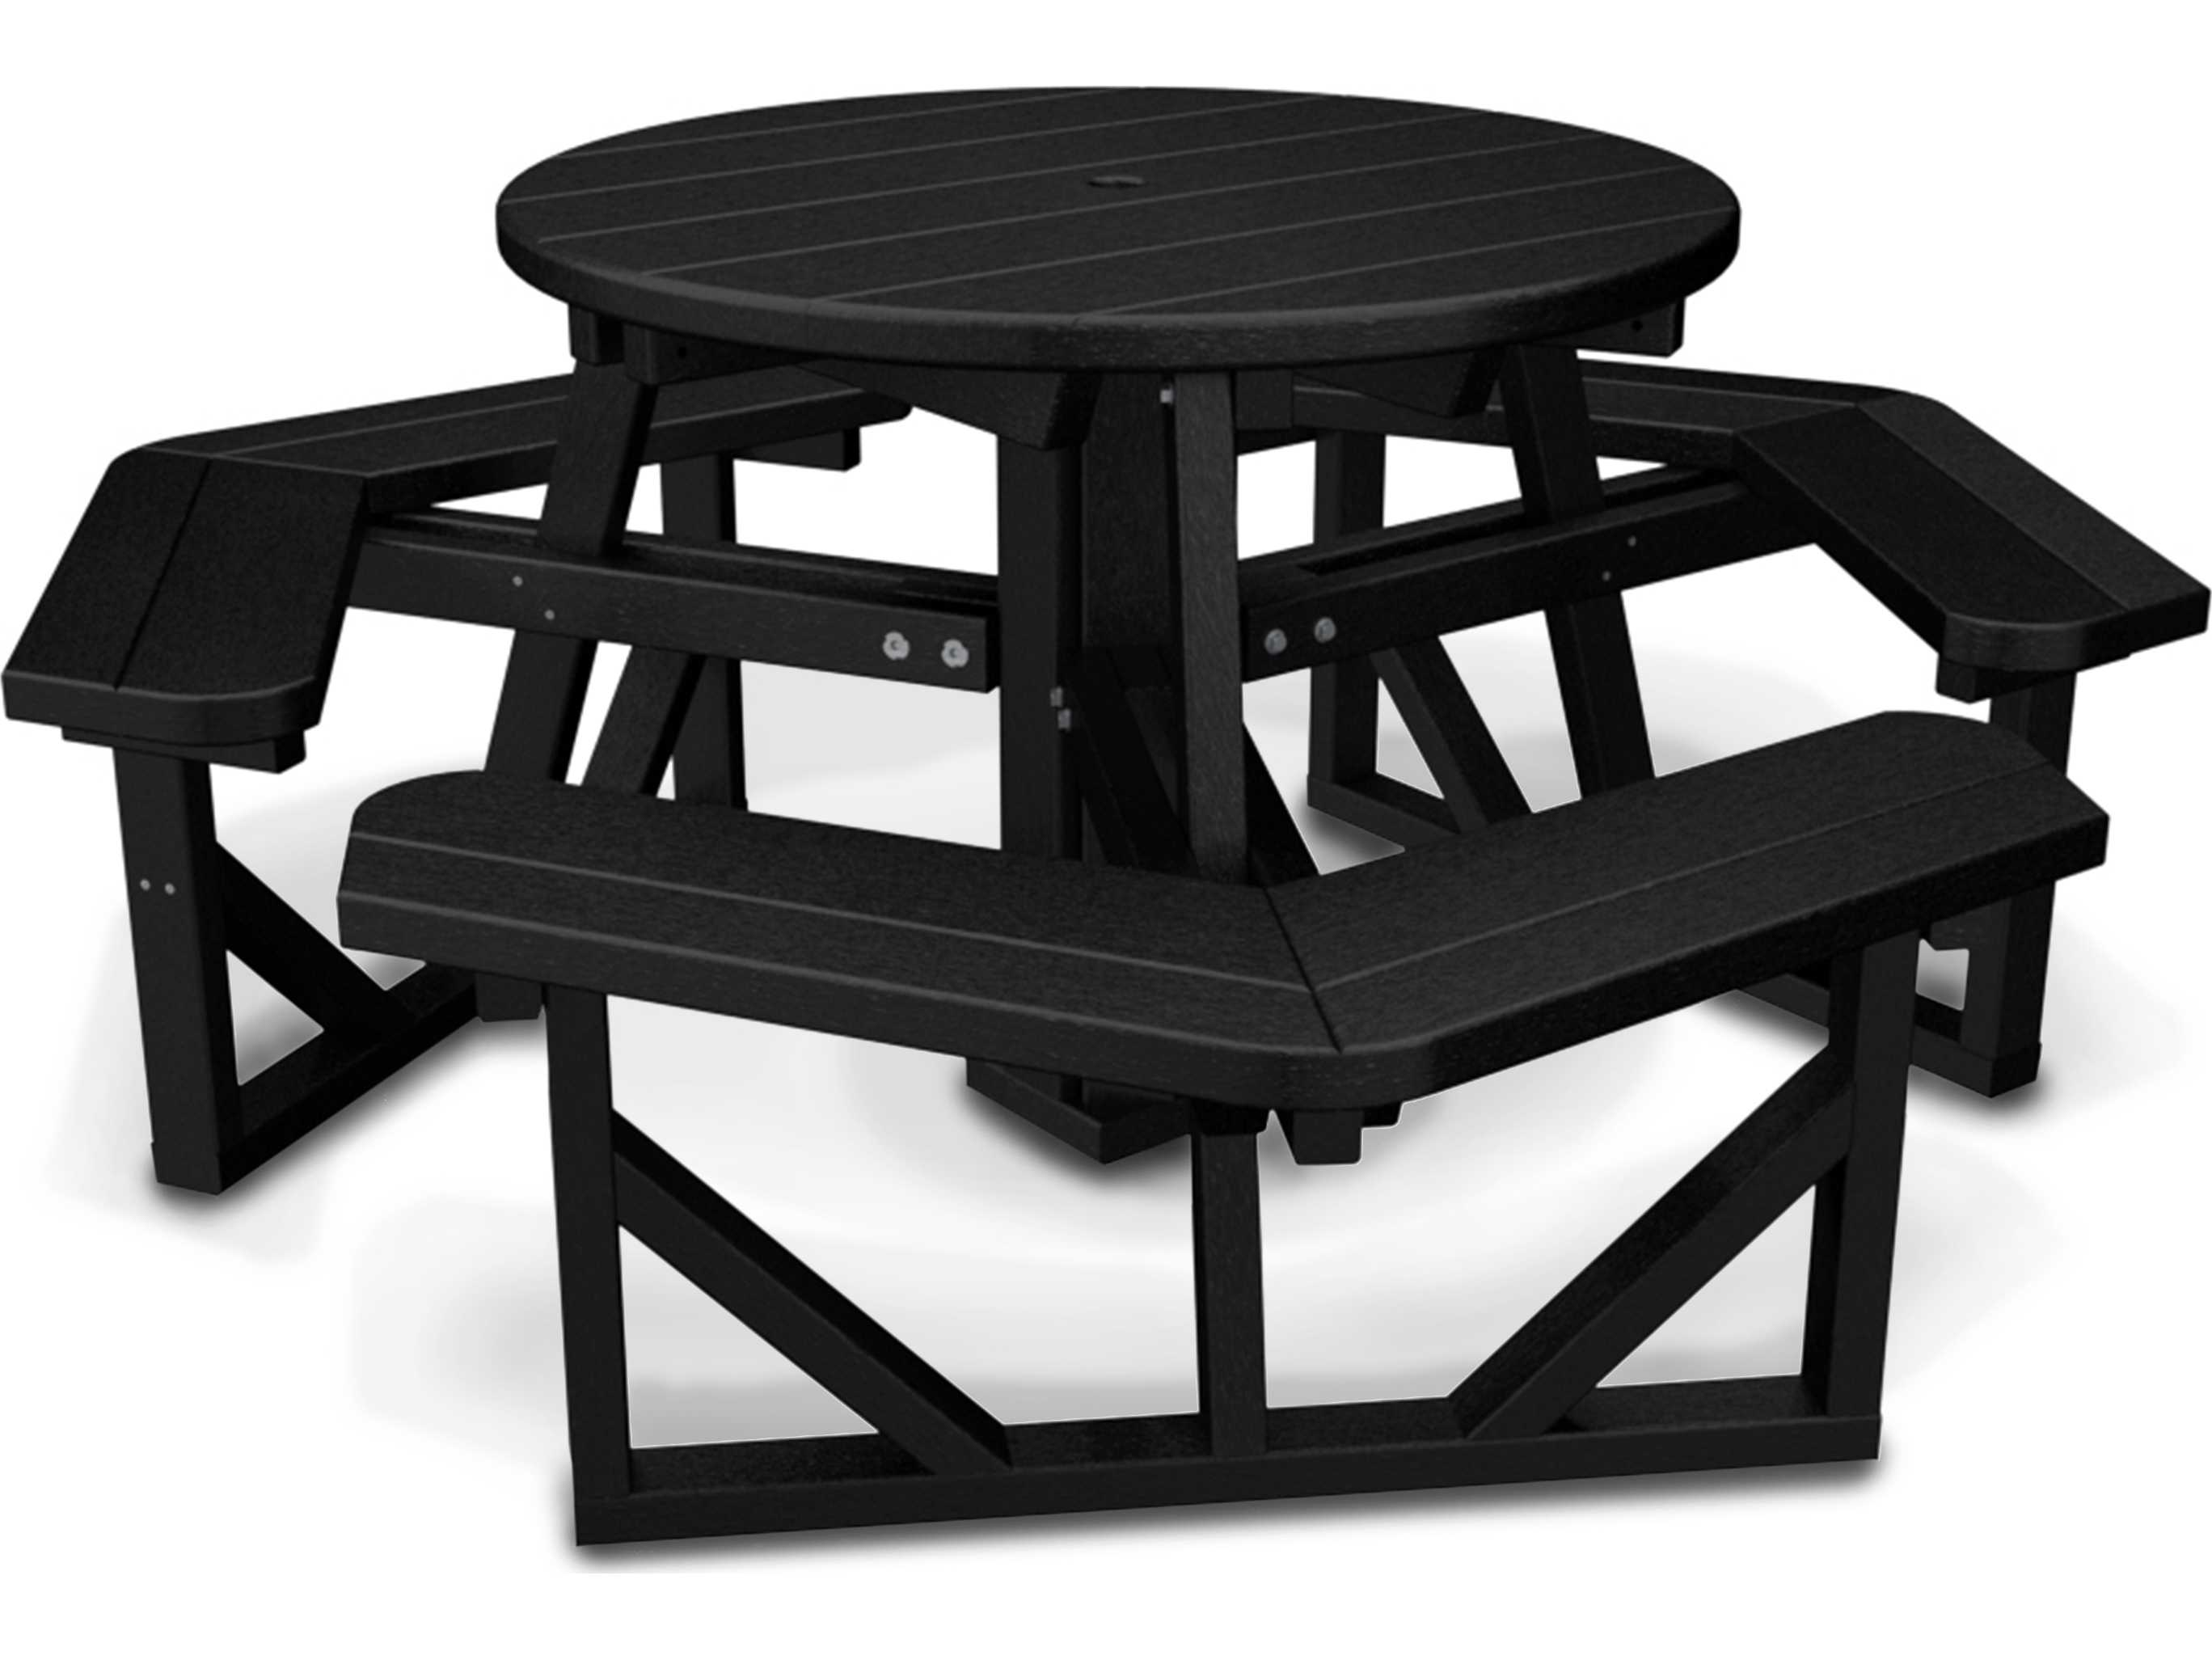 polywood park recycled plastic 36 round picnic table ph36. Black Bedroom Furniture Sets. Home Design Ideas